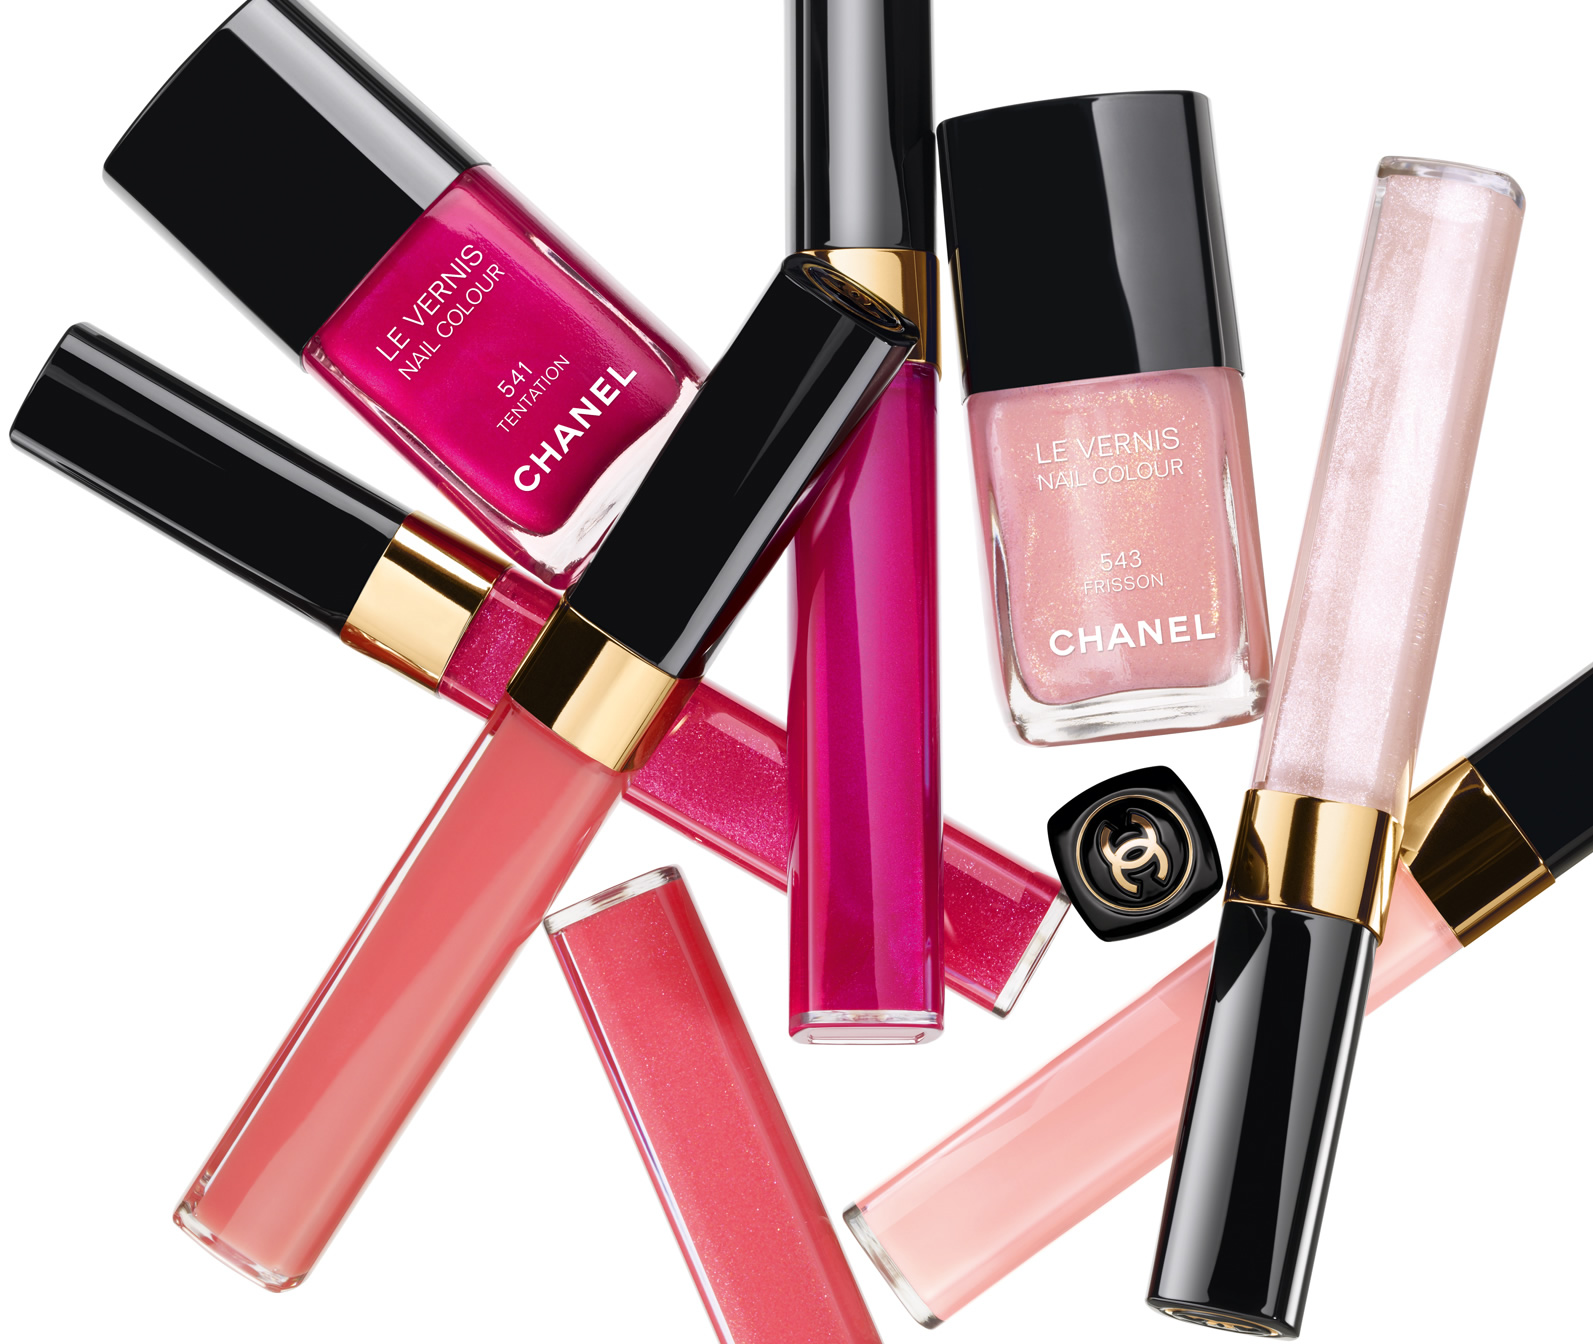 Chanel roses ultimate de chanel makeup collection for spring 2012 makeup4all.